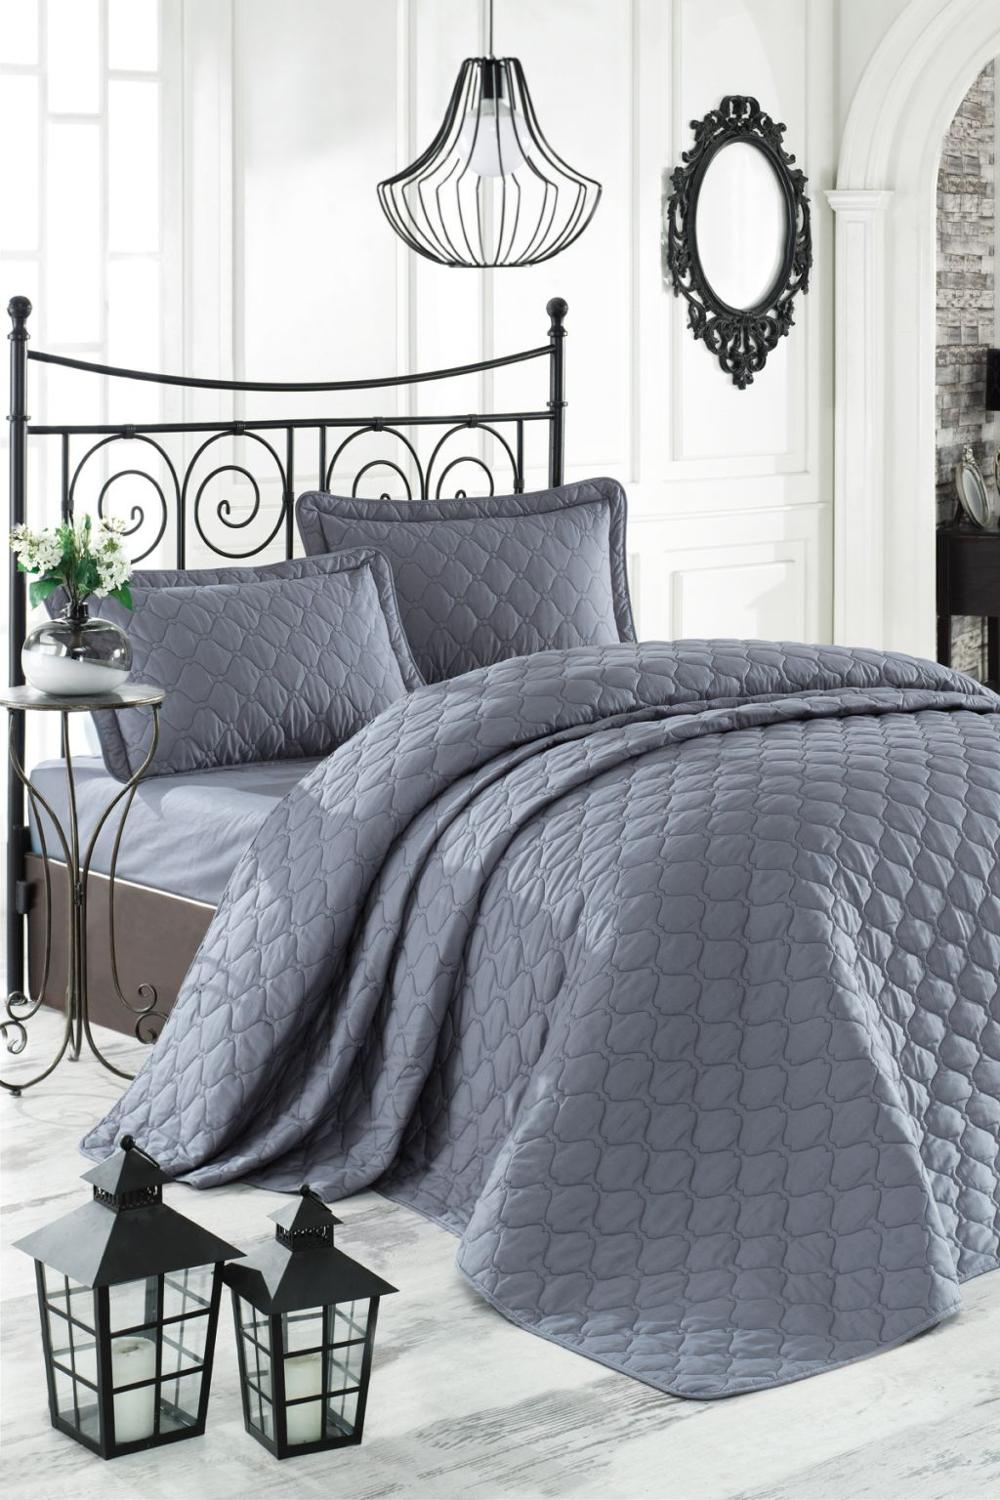 100 turkish cotton bedspread bedding set bedspread and pillow case quilting luxury bed covers bed linen